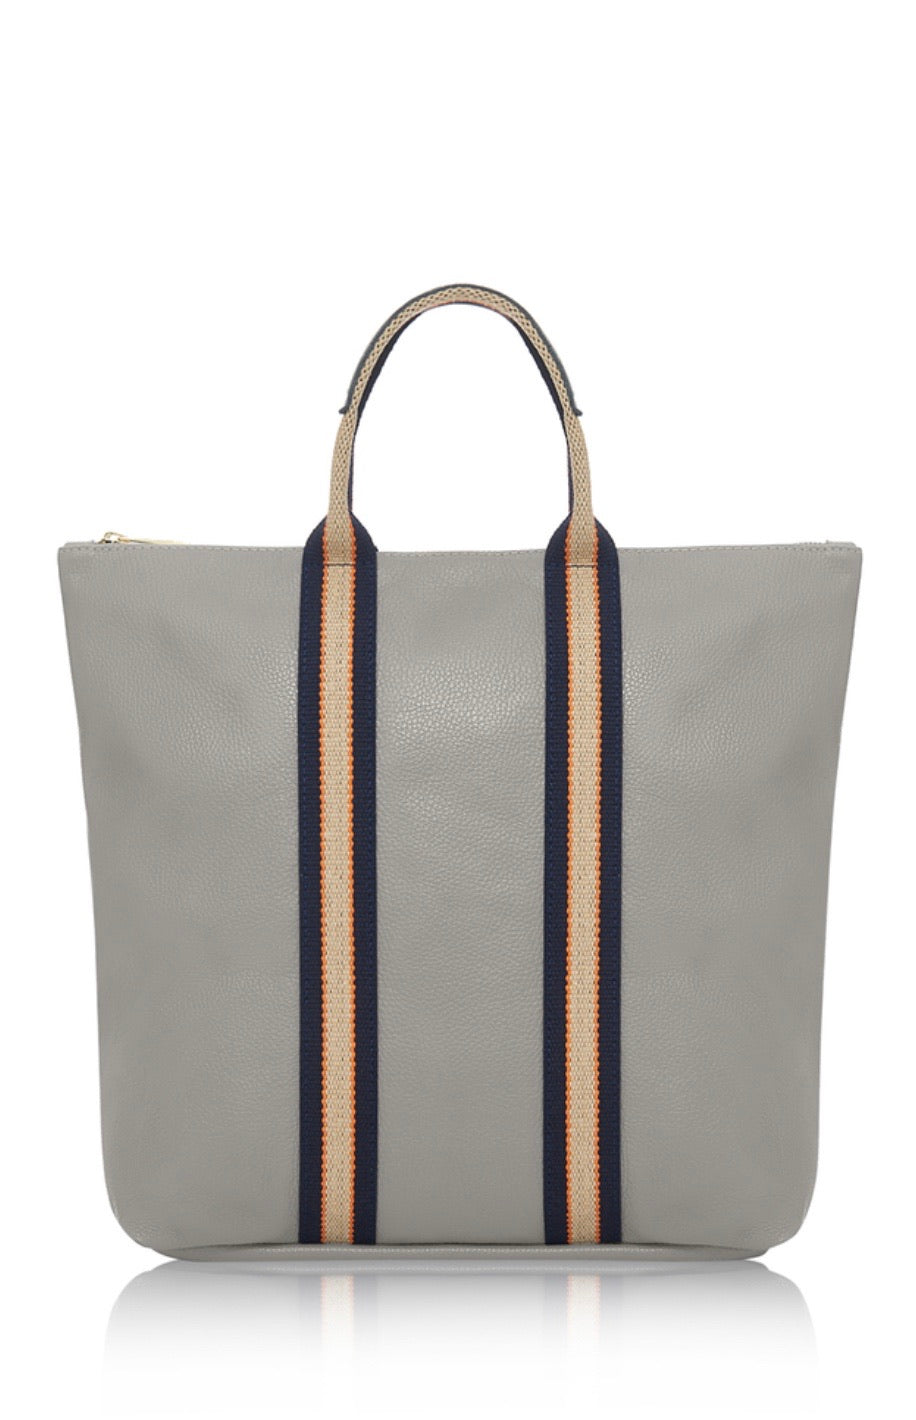 Leather Tote City Rucksack - Grey